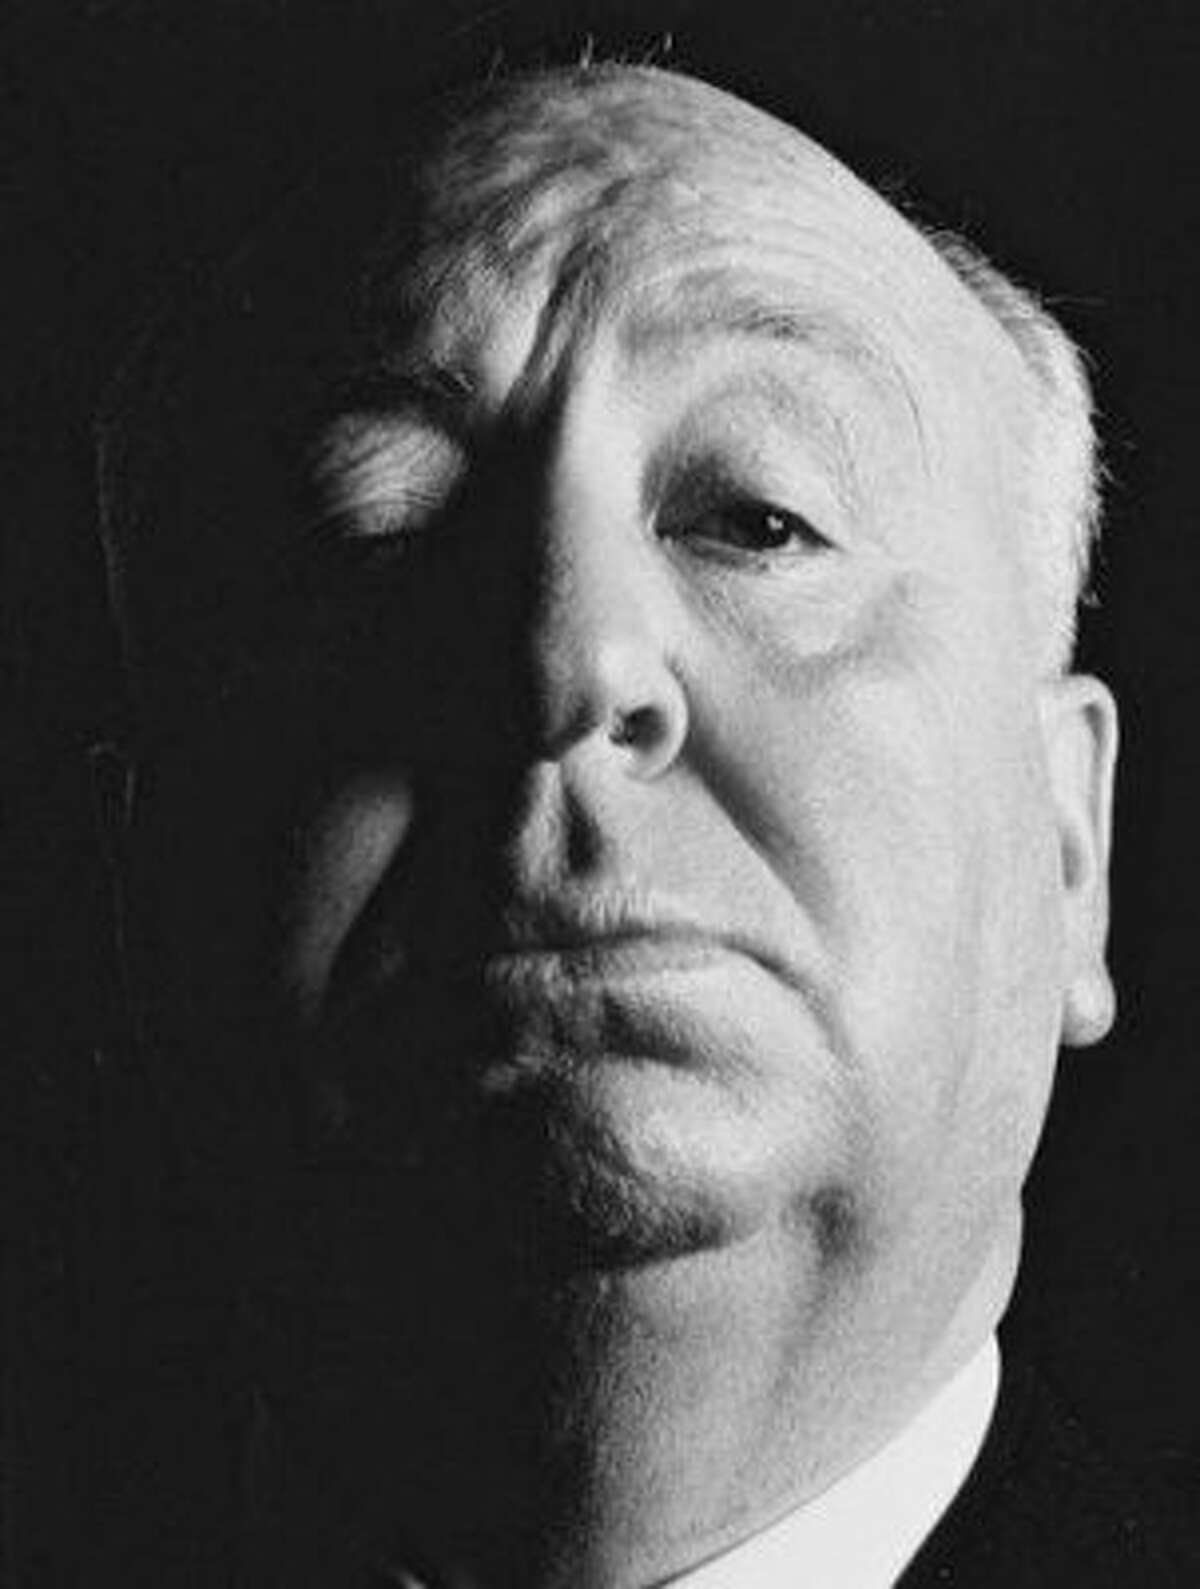 Alfred Hitchcock is regarded as a visual innovator and a master of suspense and the psychological thriller. Here are 10 must-see Hitchcock films, according to the American Film Institute and others.